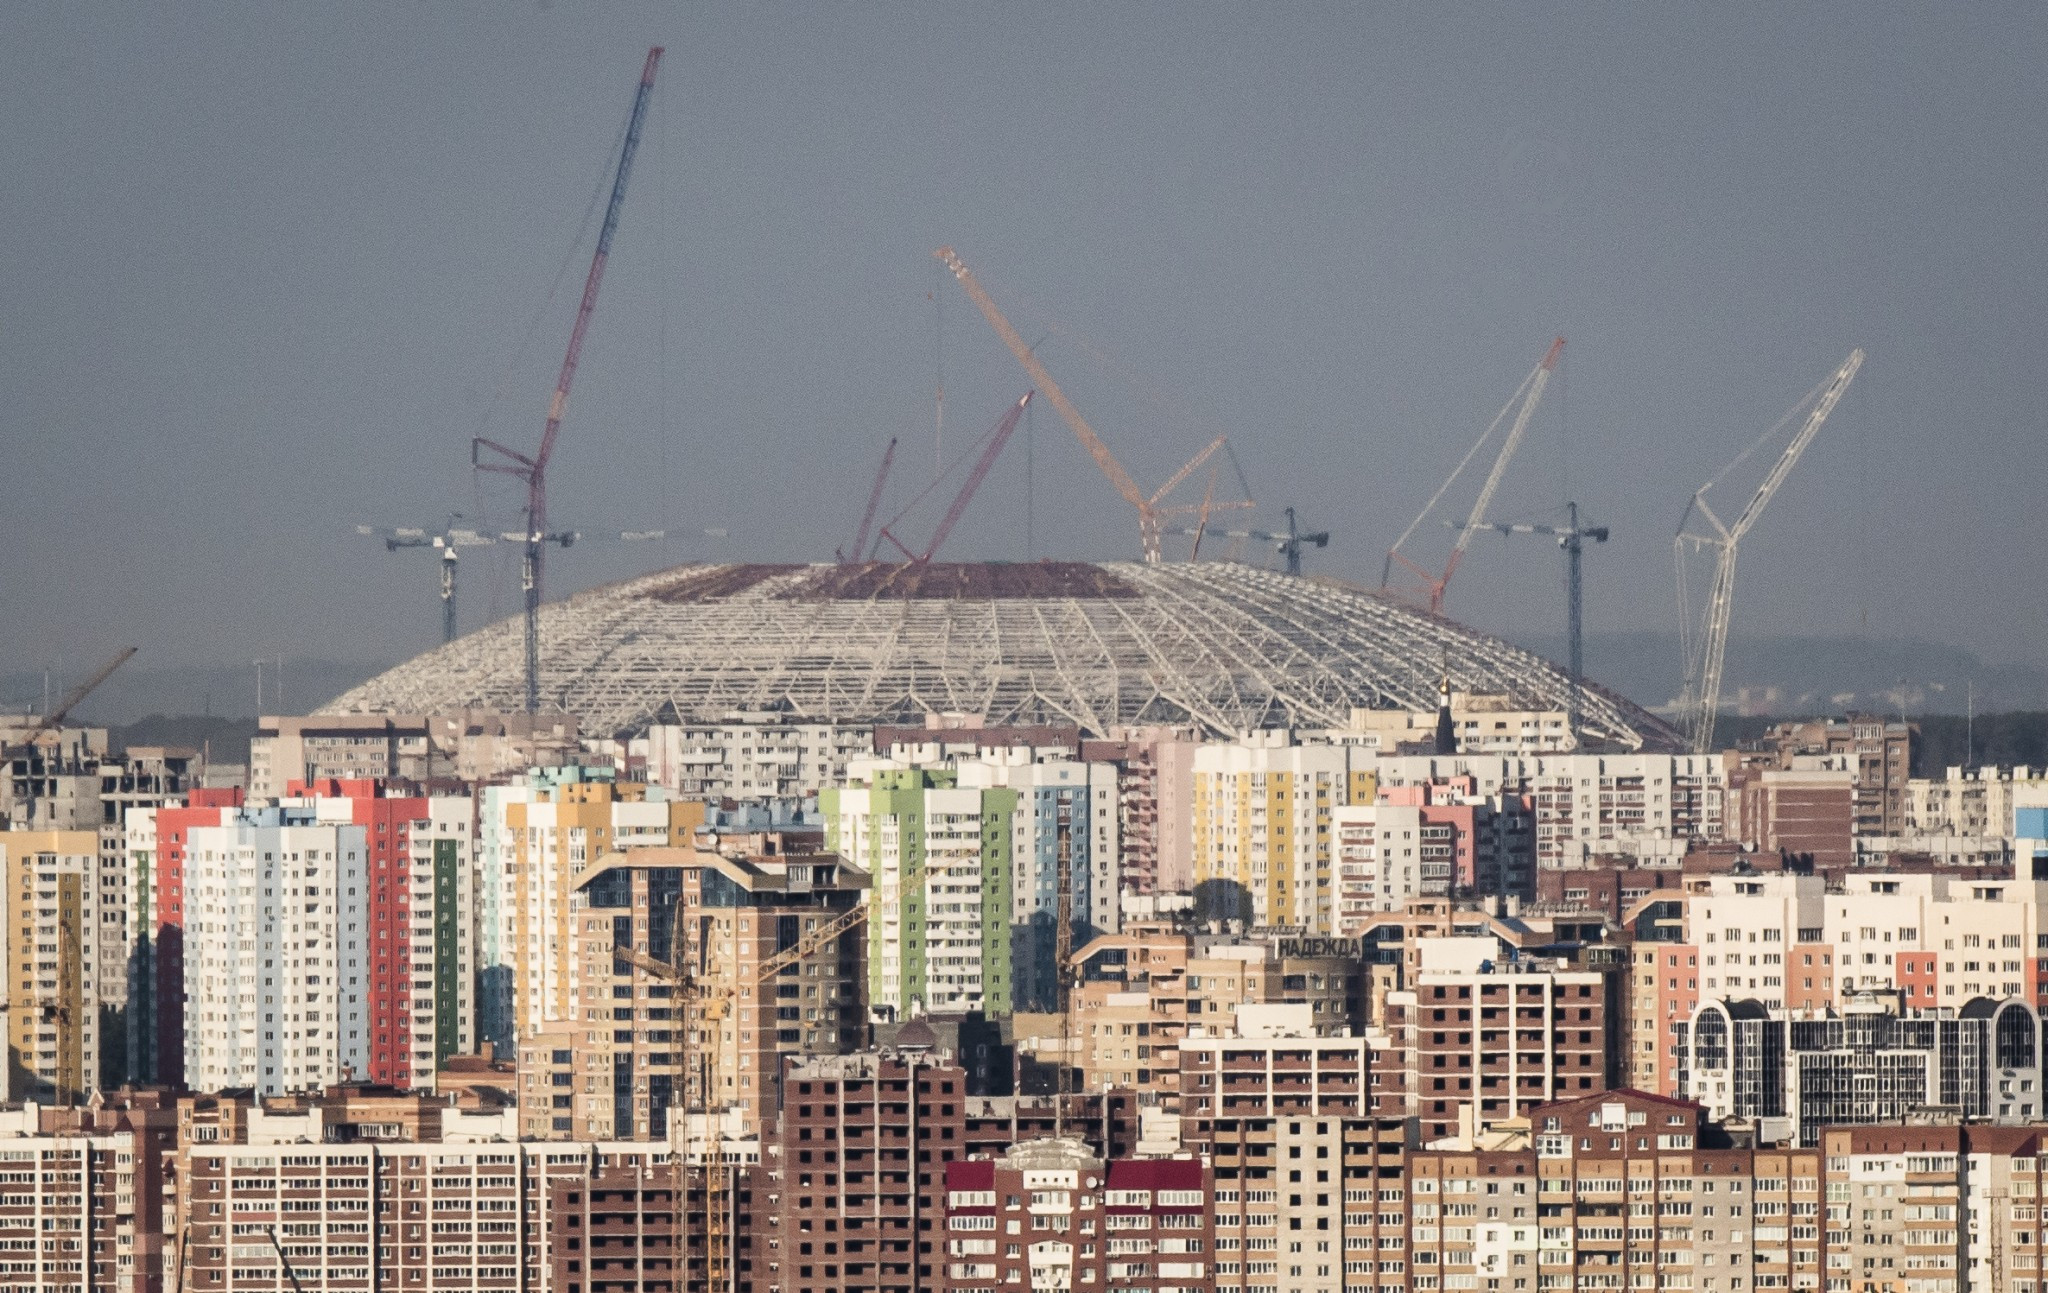 World Cup Stadium in Samara hit by further delays as contractors confirm work 30 days behind schedule